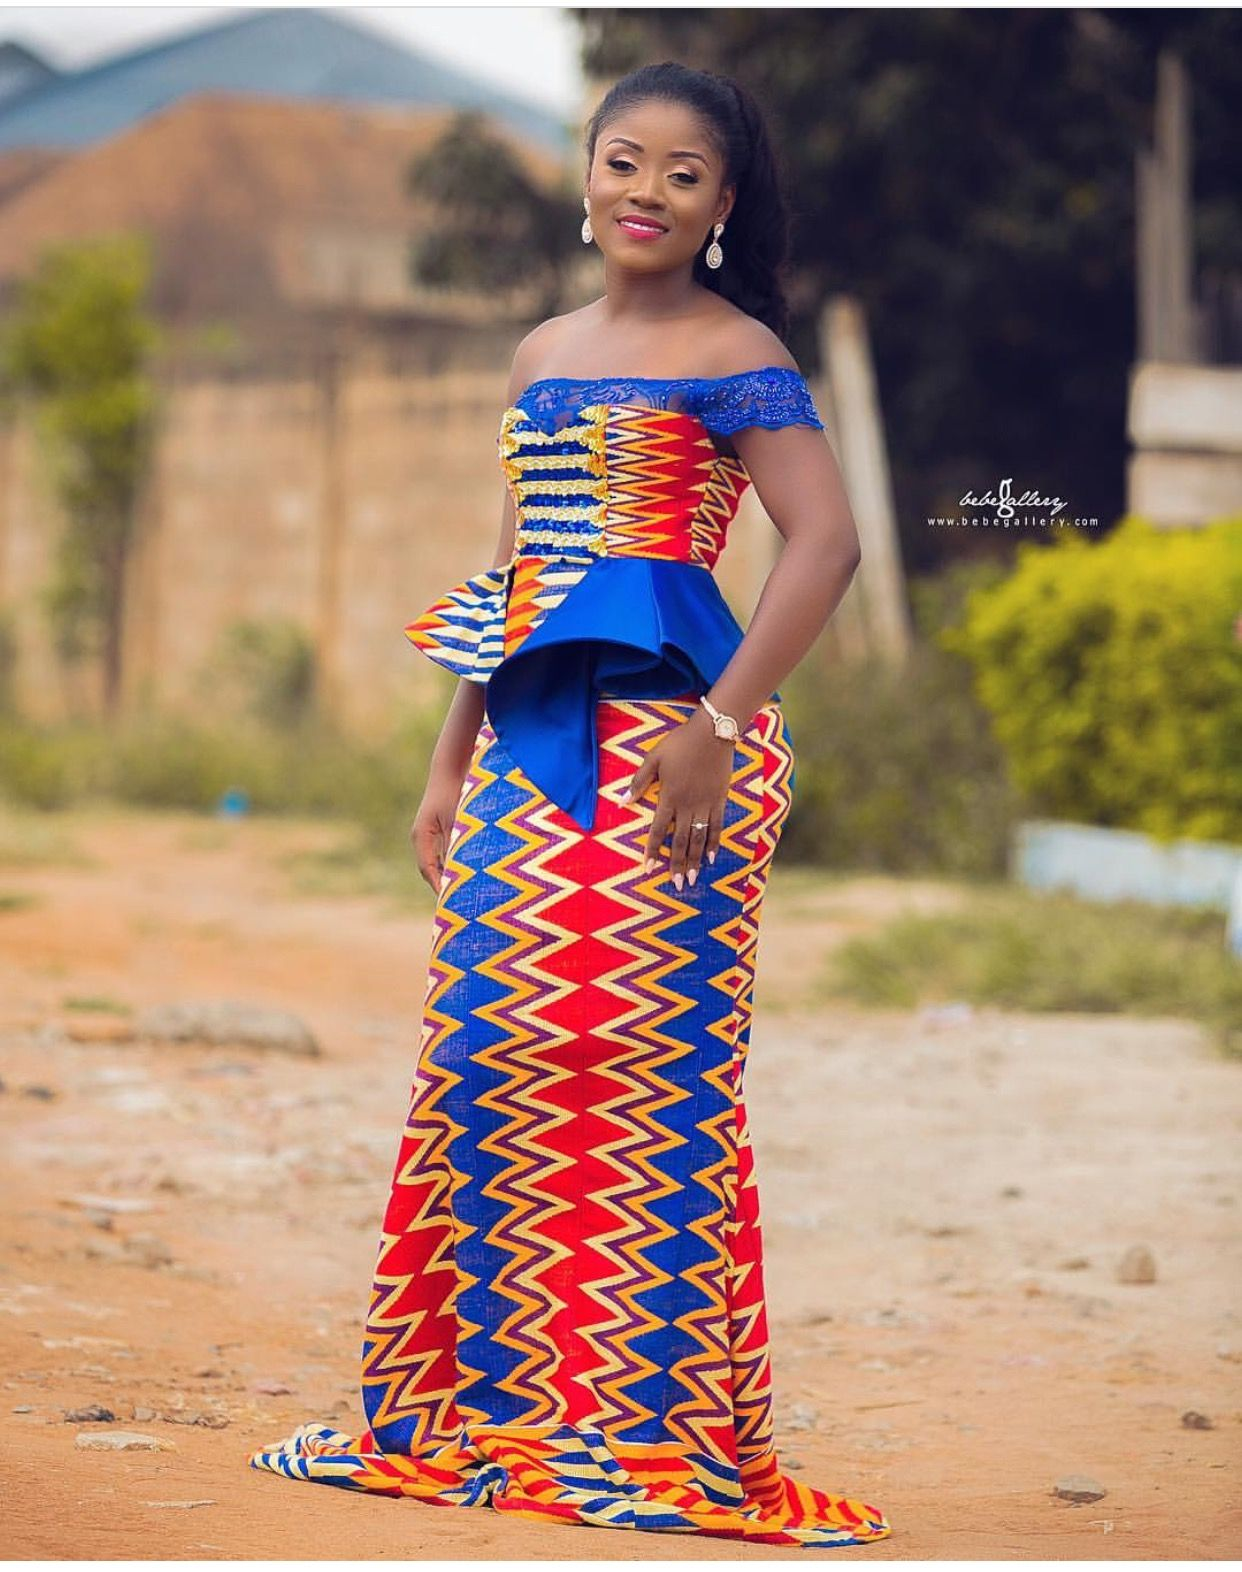 Shedoll#Gown by Shebybena#Traditional wear#kenteoutfit